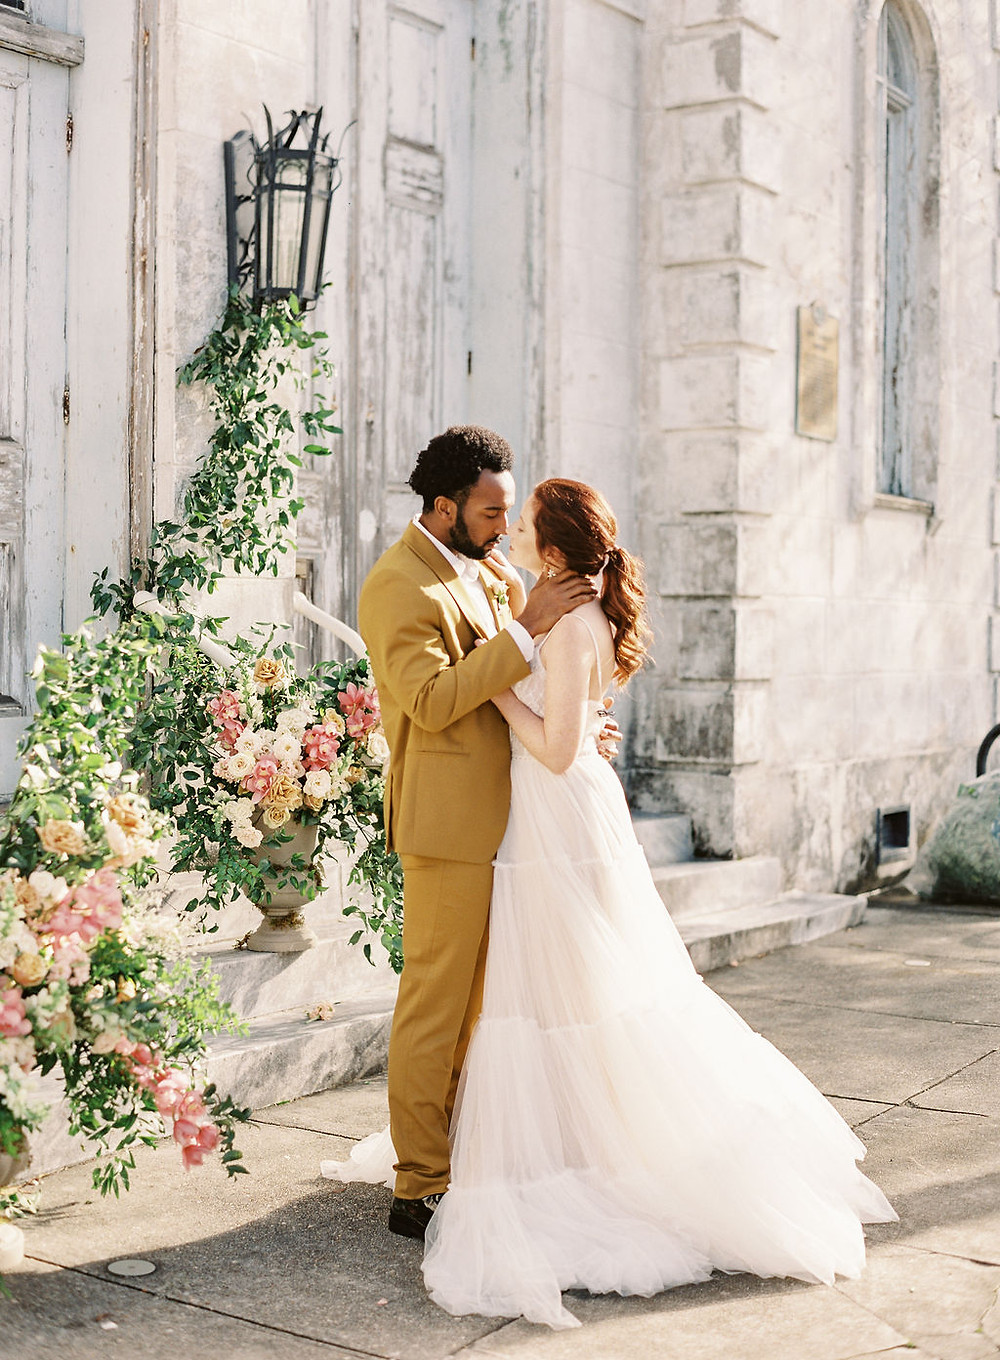 Bride and Groom for Bridgerton Inspired Wedding at the Marigny Opera House in New Orleans with Lounge Spaces and Vintage Furniture by Lovegood Rentals